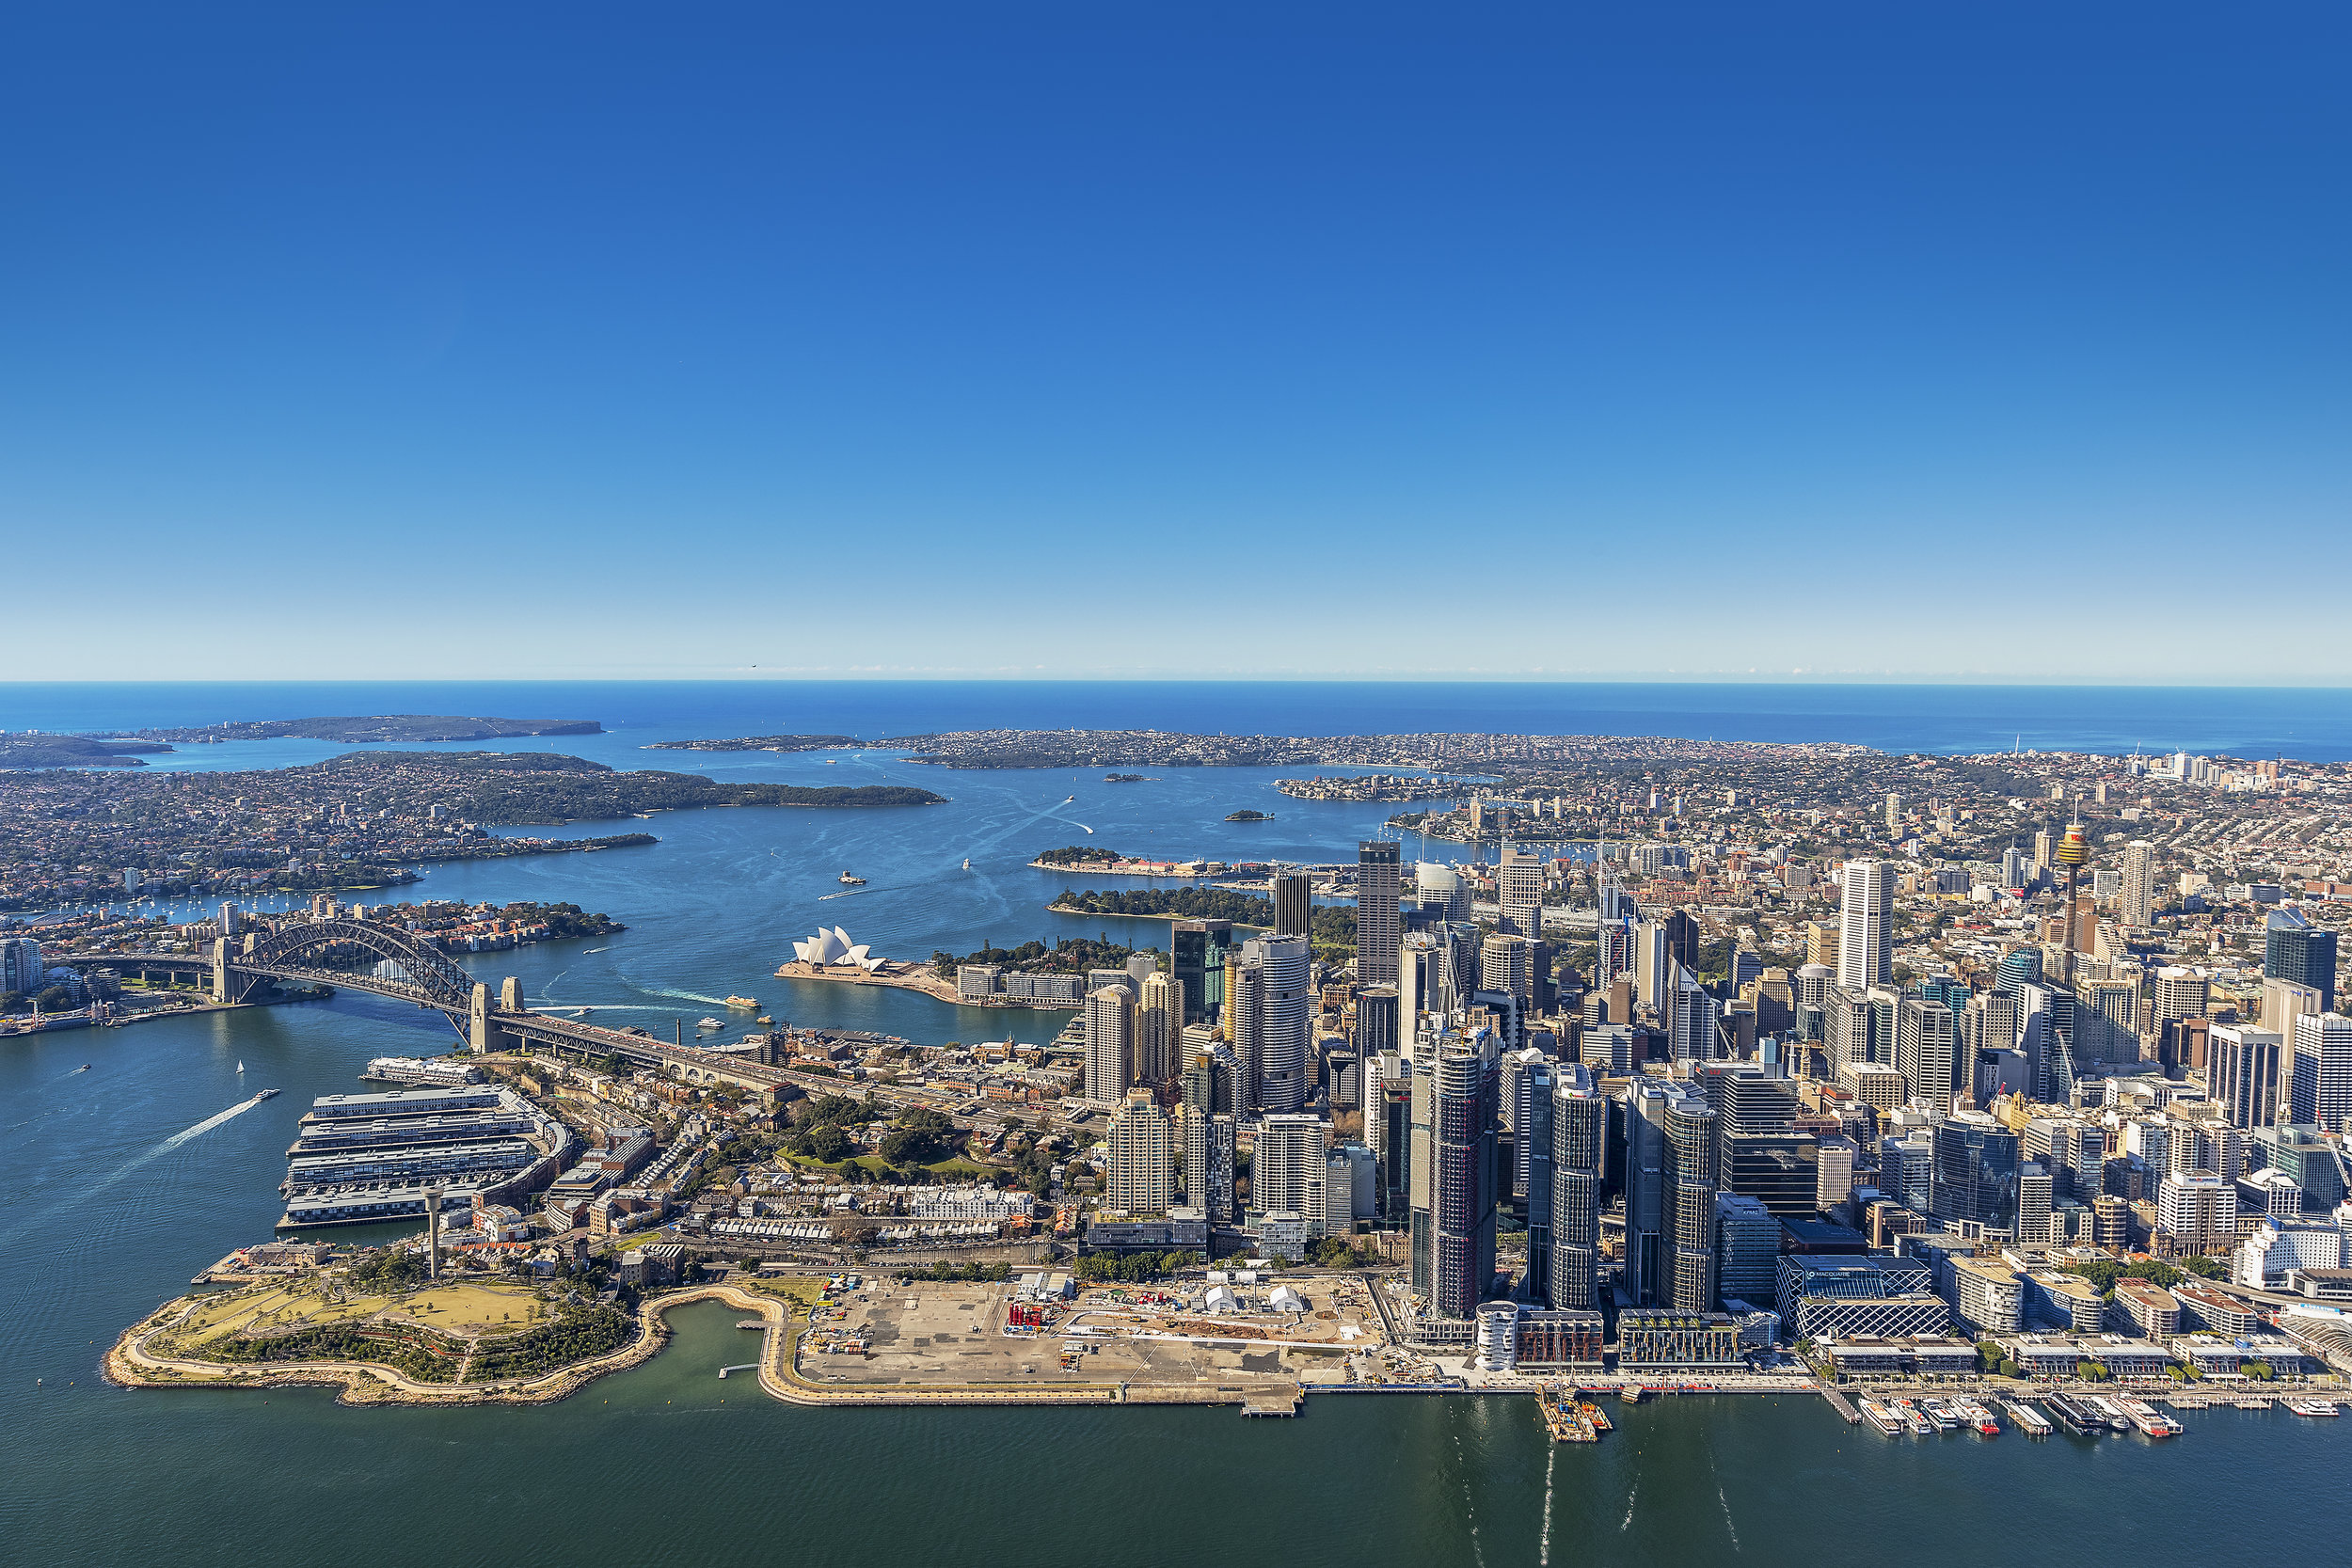 An aerial view of Barangaroo. (Photo: Courtesy Barangaroo Delivery Authority)